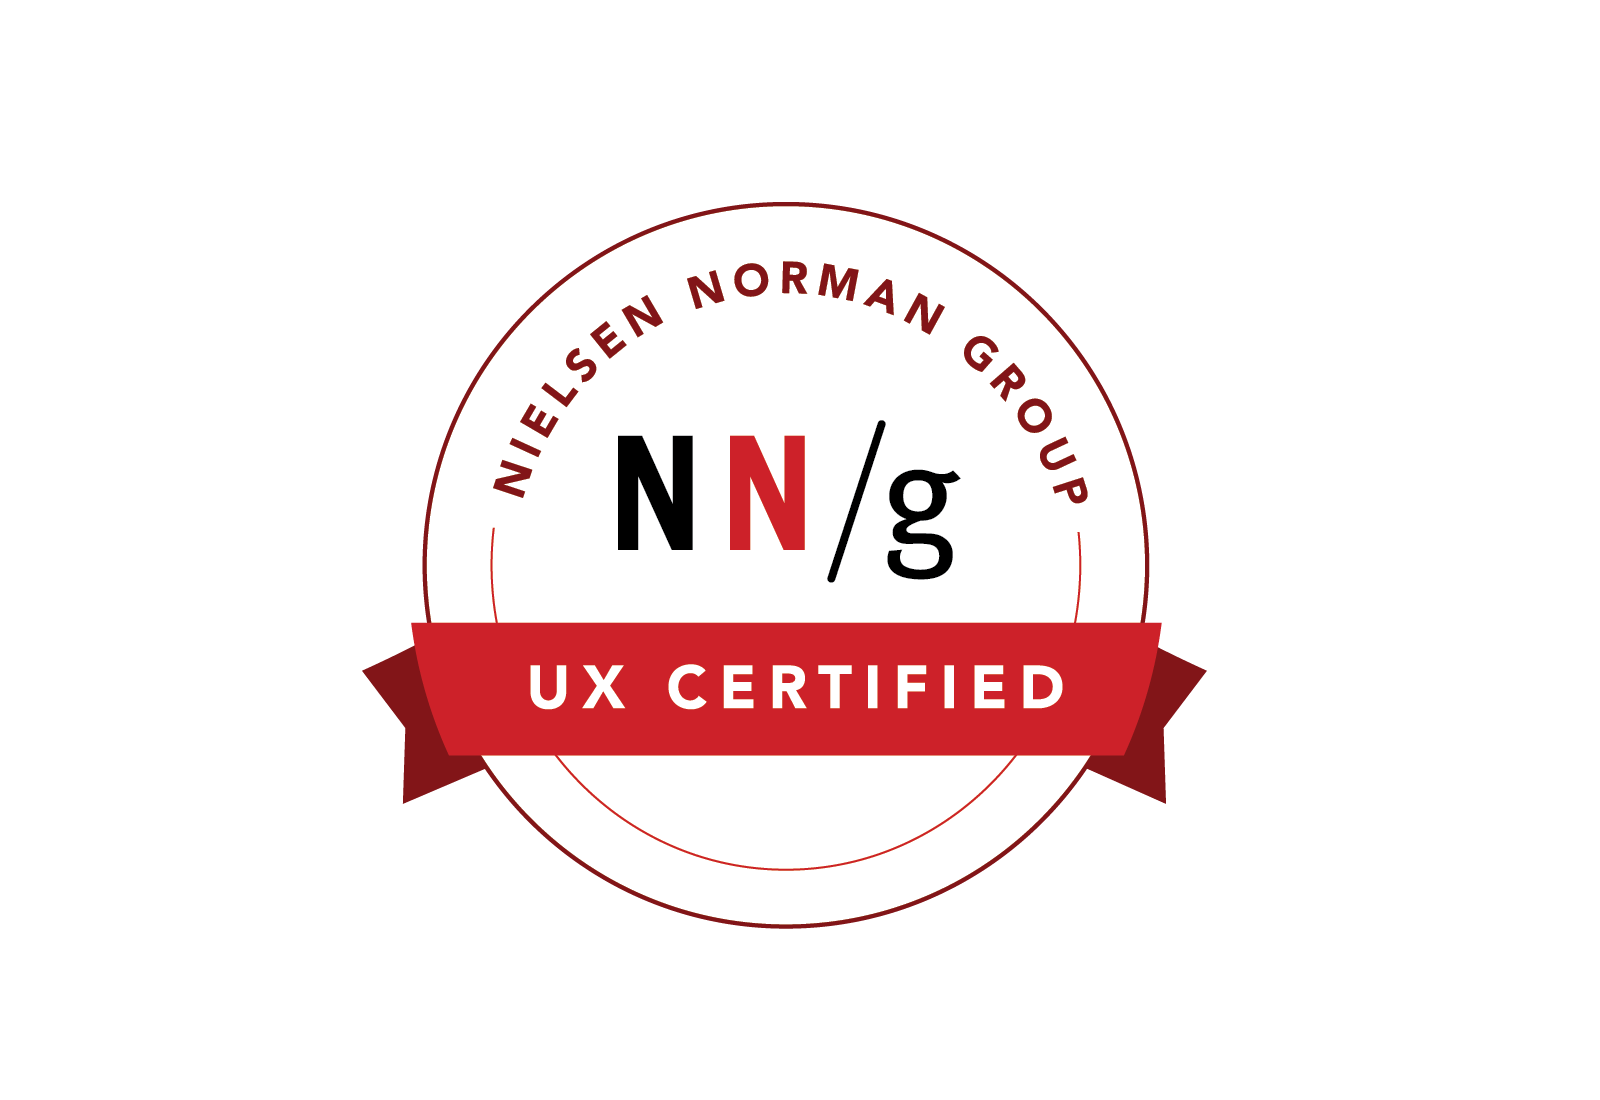 How To Display Your Nng Ux Certification Badge